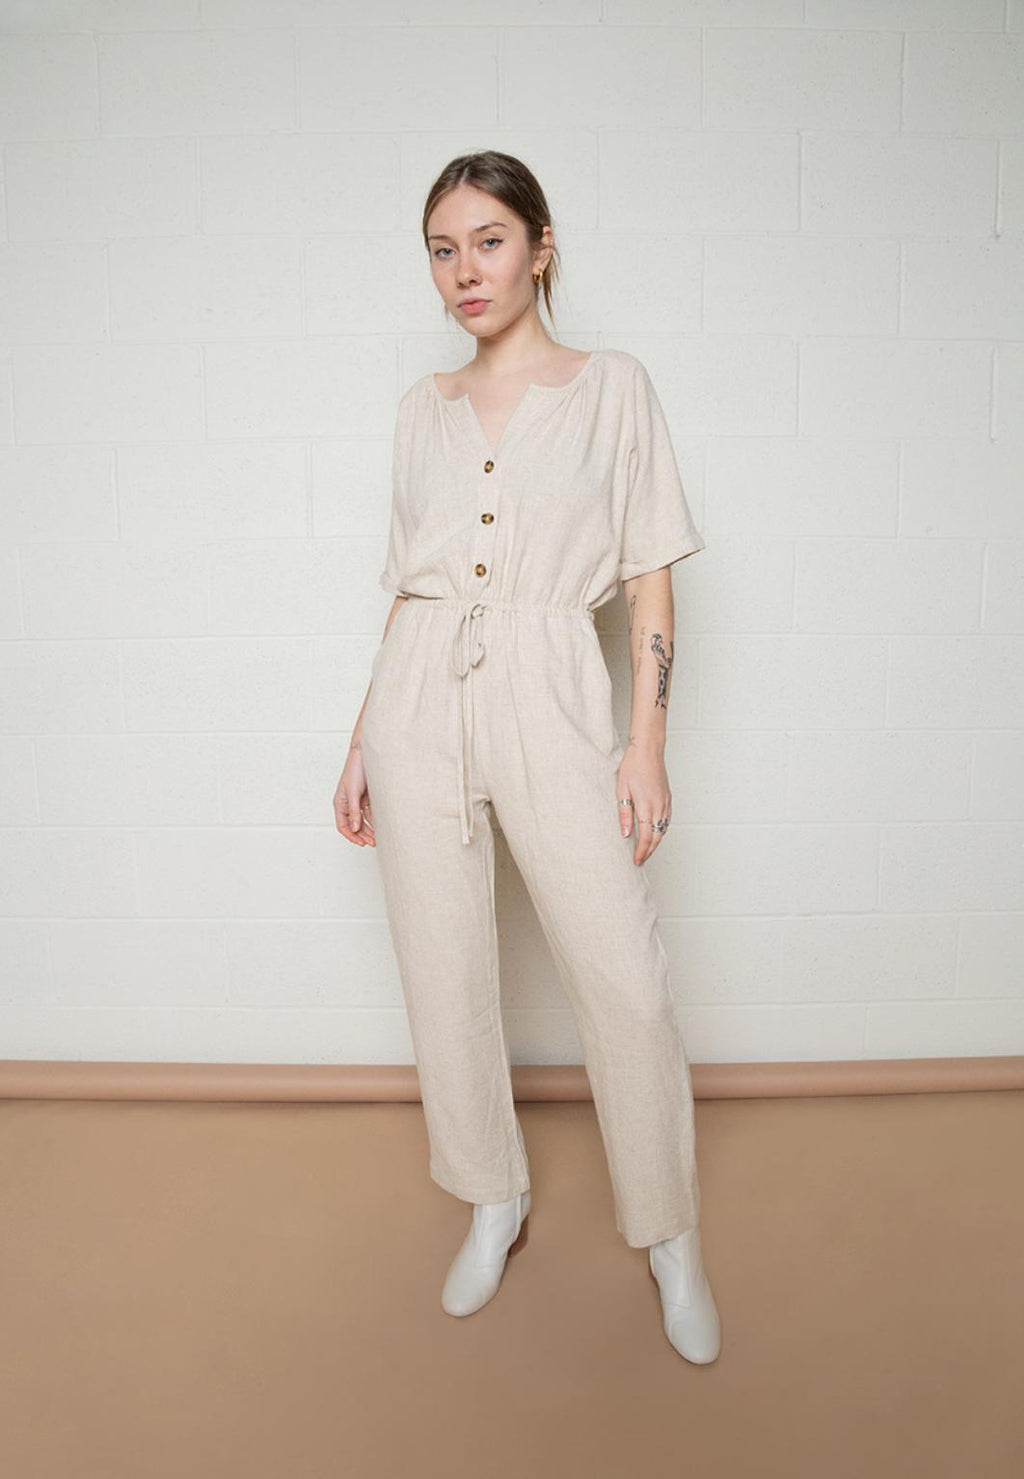 Mid Sleeve Jumpsuit with Button Front and Elastic Tie at Waist - Oatmeal by no less than - COMMON DEAR